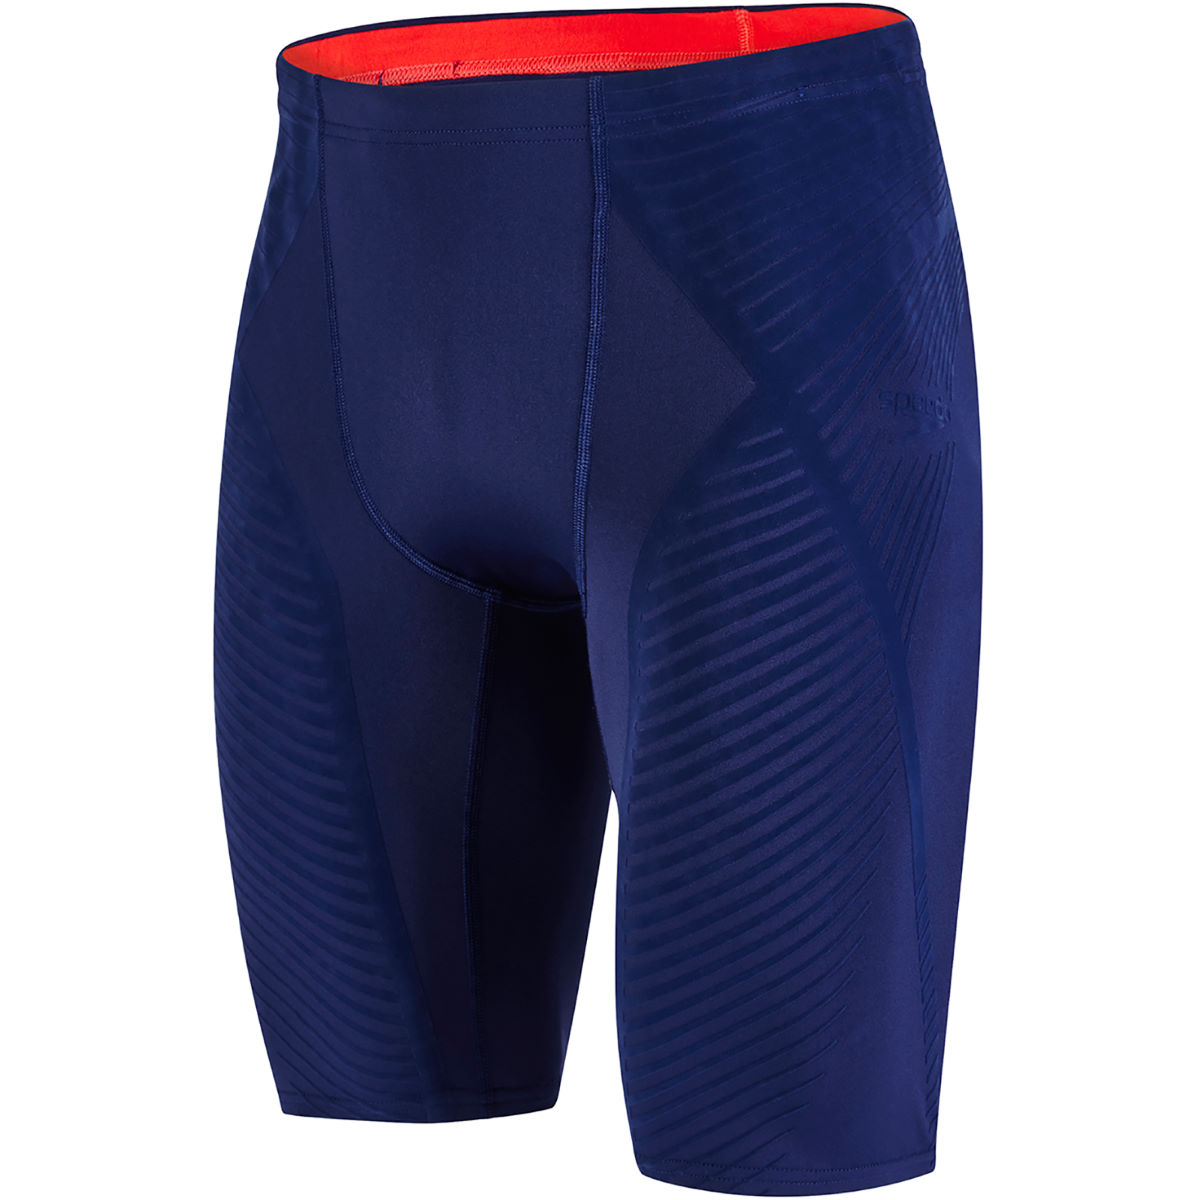 Jammer Speedo Fit Power Form - 26 Navy/Lava Red